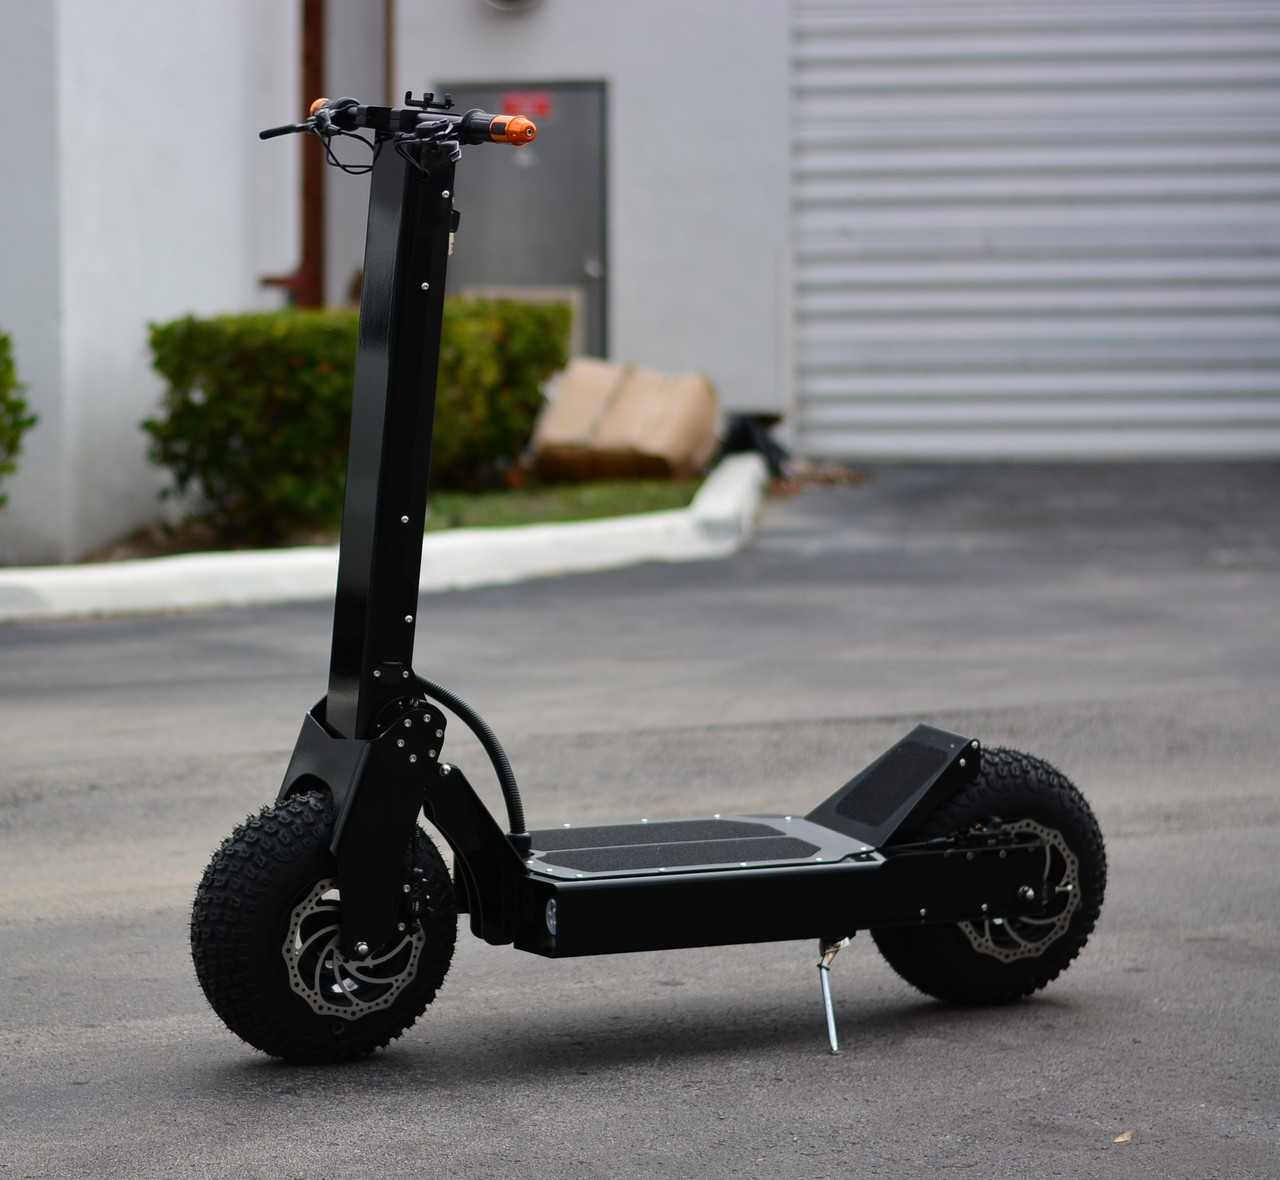 NEW! 2019 RECON 8000W 96v Electric Kick Scooter (Black) ****FREE SHIPPING USA****